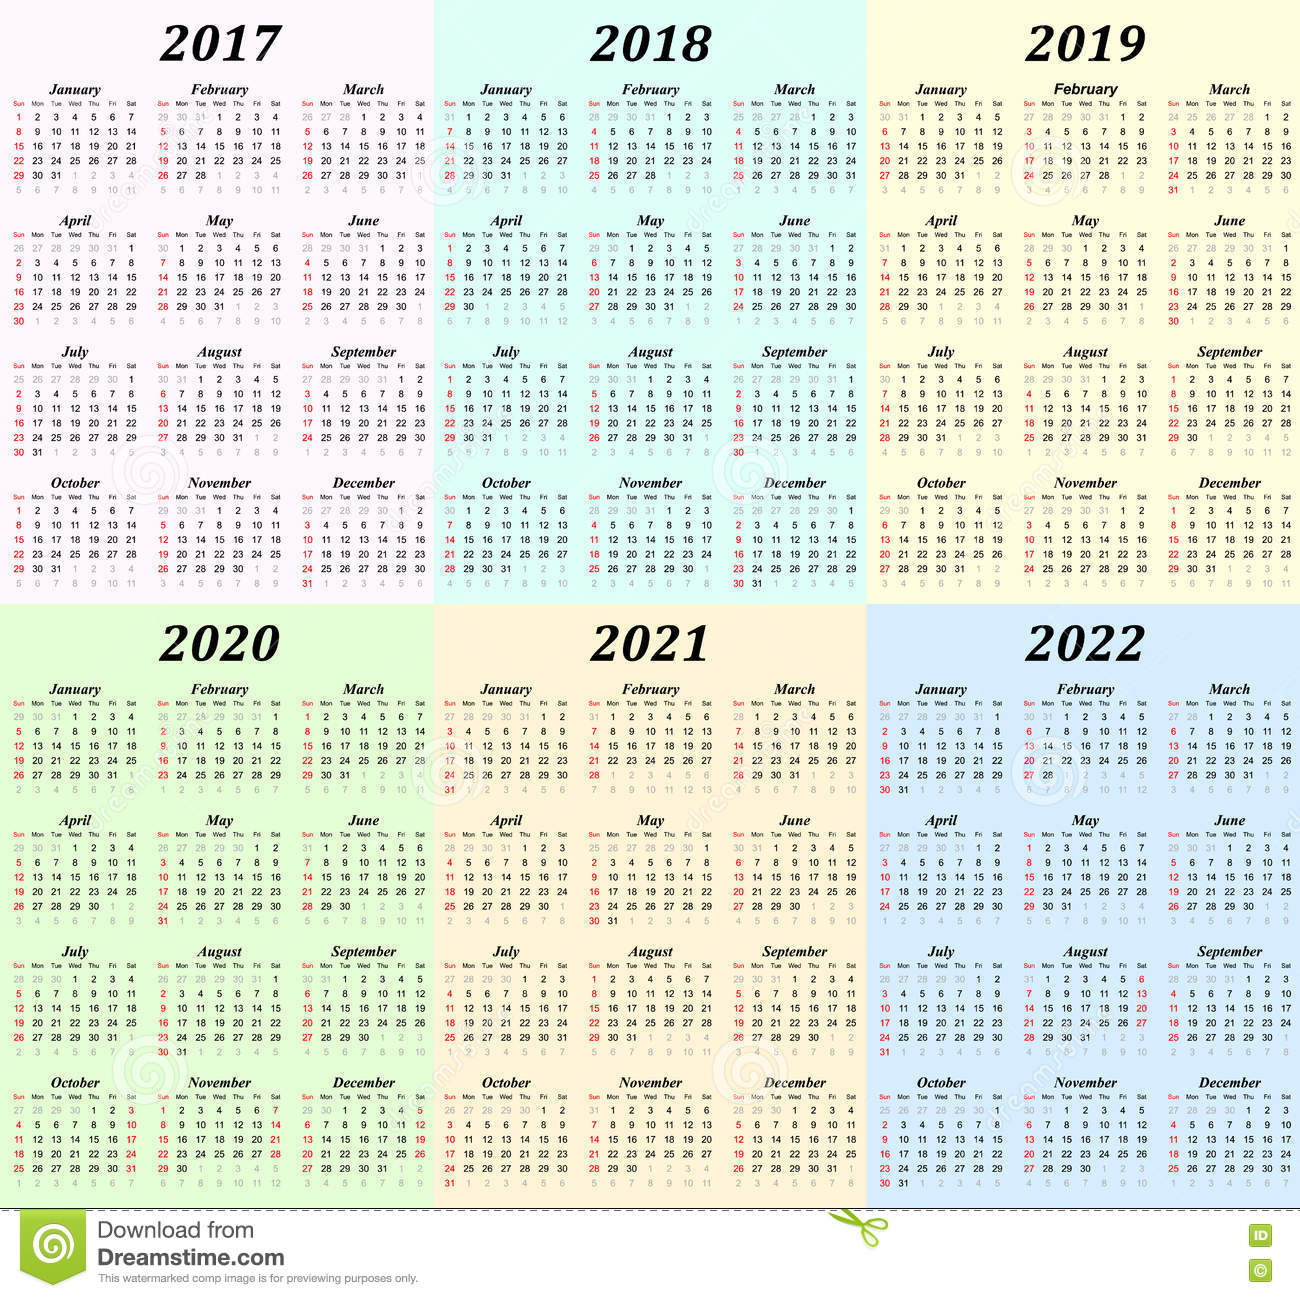 Six Year Calendar - 2017, 2018, 2019, 2020, 2021 And 2022 intended for 2021 - 2023 Four Year Monthly Calendar